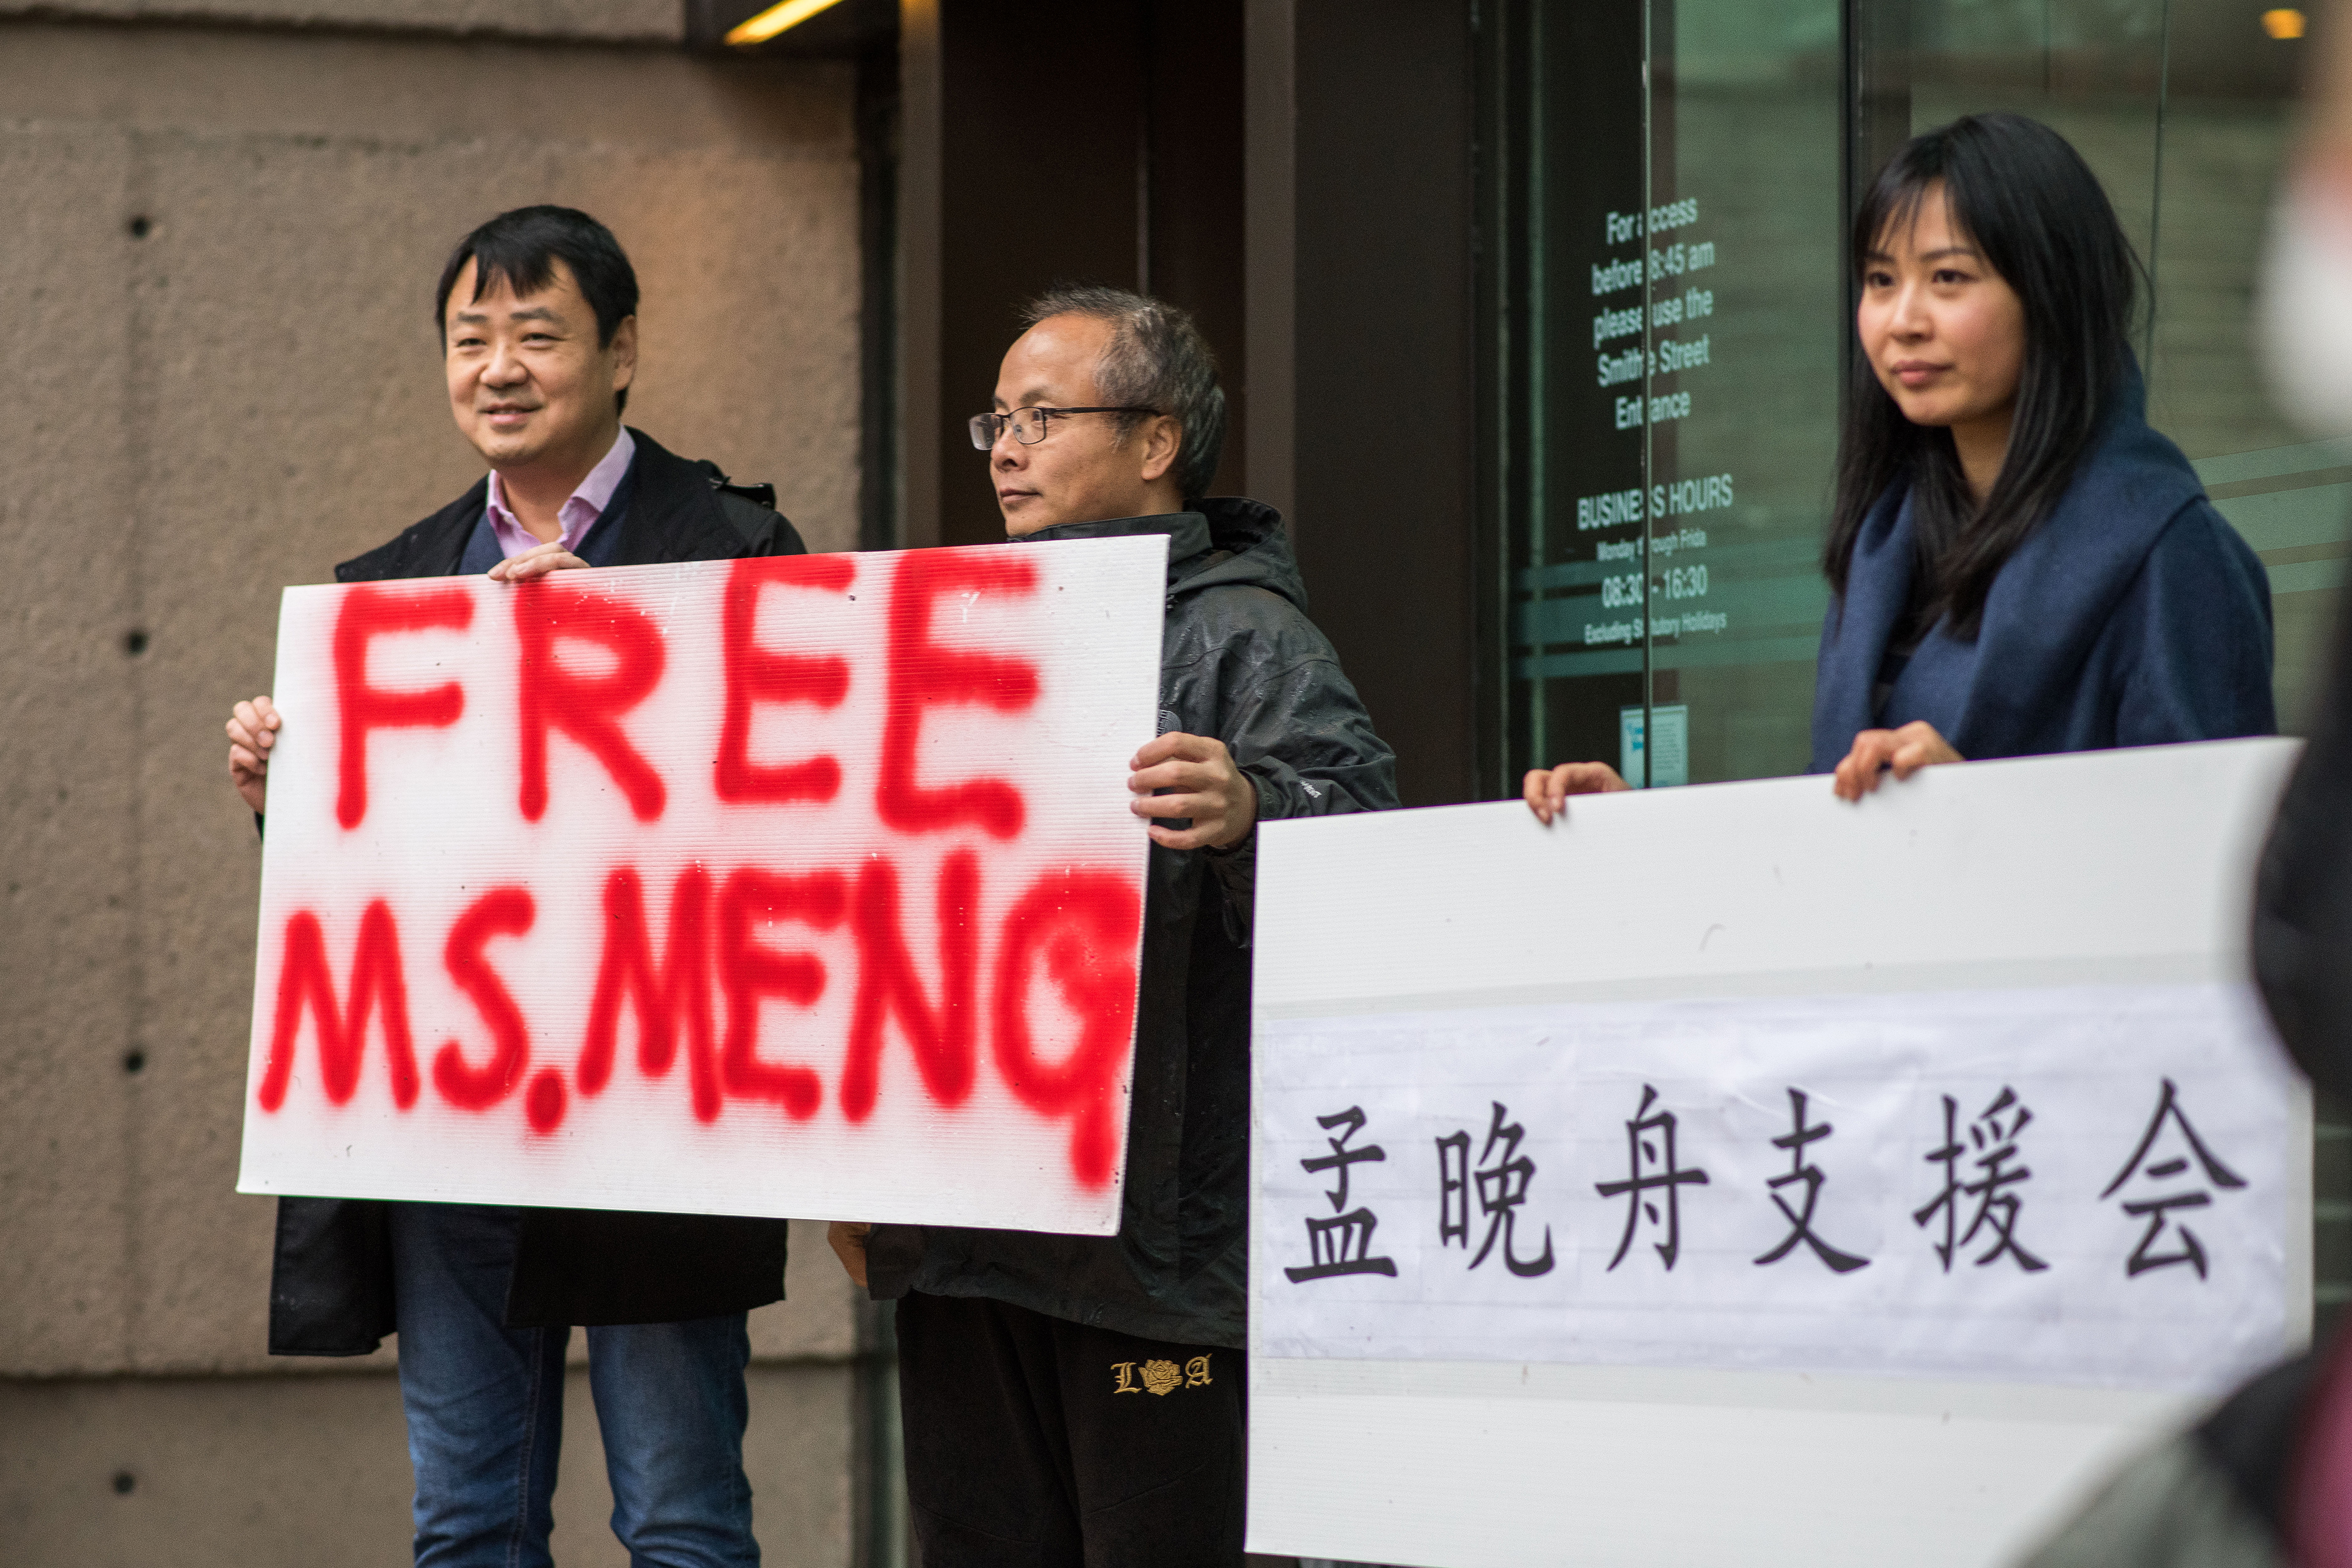 People hold signs in support of Meng Wanzhou, chief financial officer of Huawei Technologies. , outside a bail hearing at the Supreme Court in Vancouver on Dec. 11, 2018.